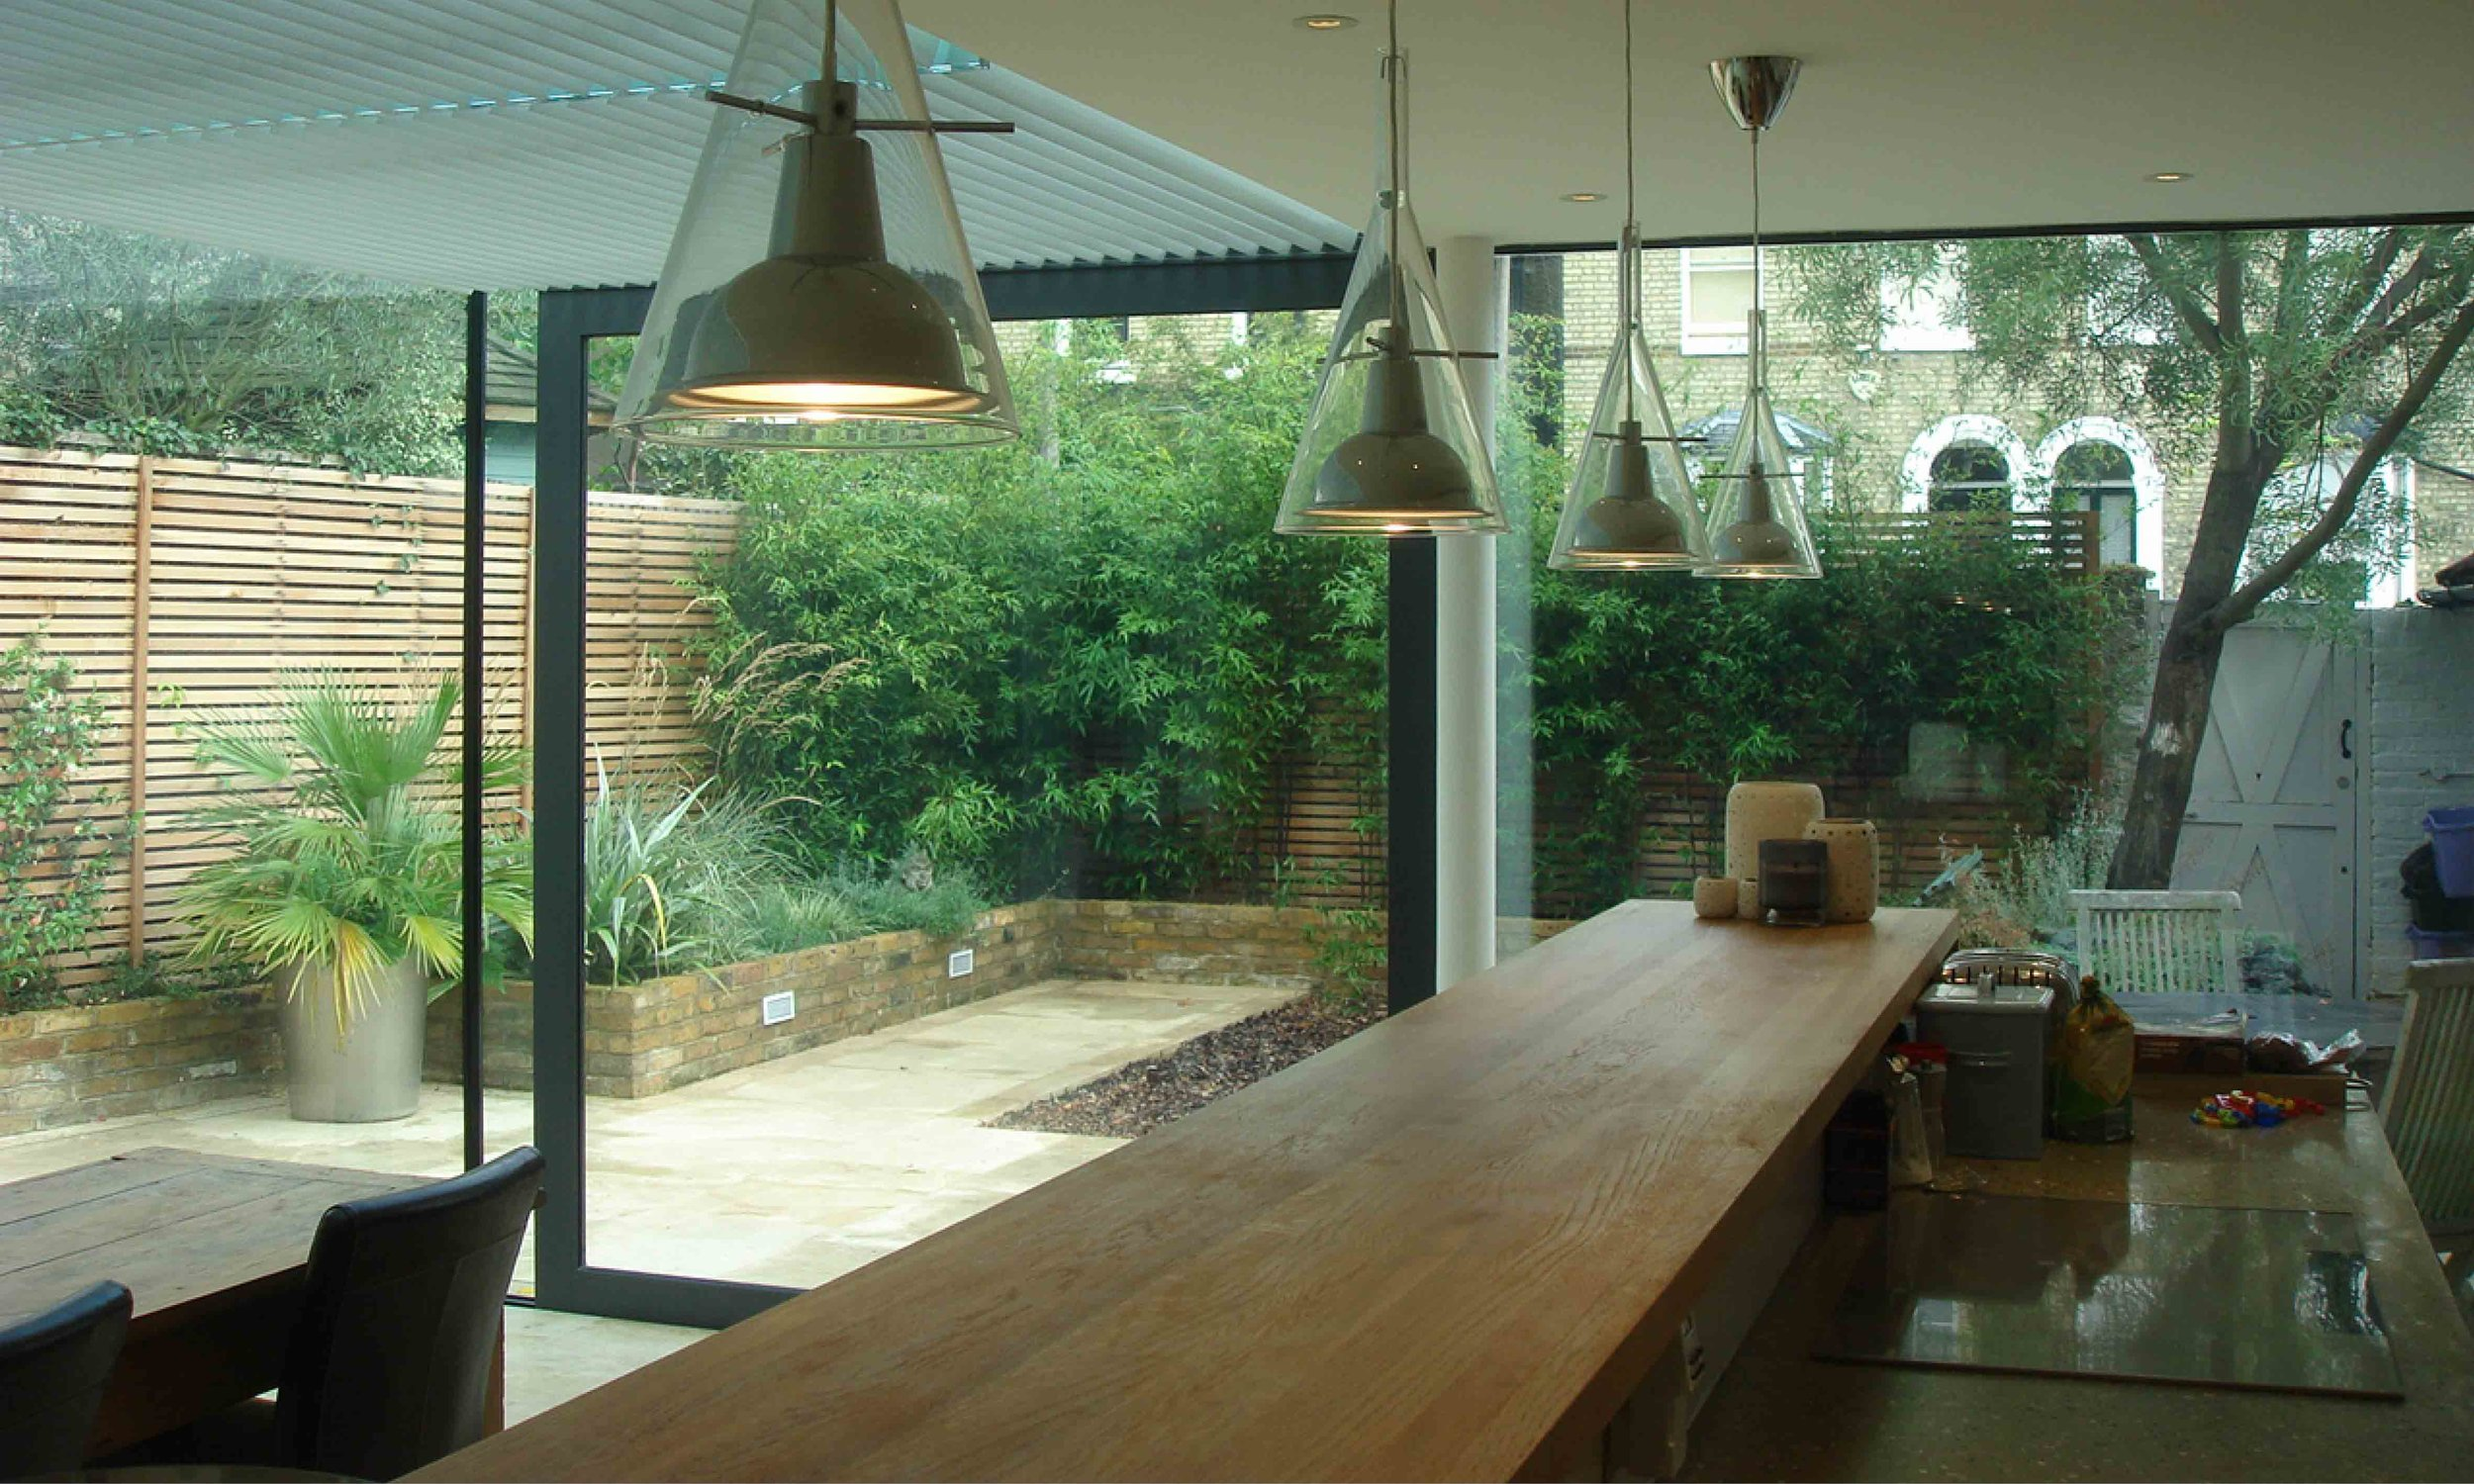 A wooden work surface acts as the focal point tithe kitchen and also balances with the materials used in the garden's landscaping.